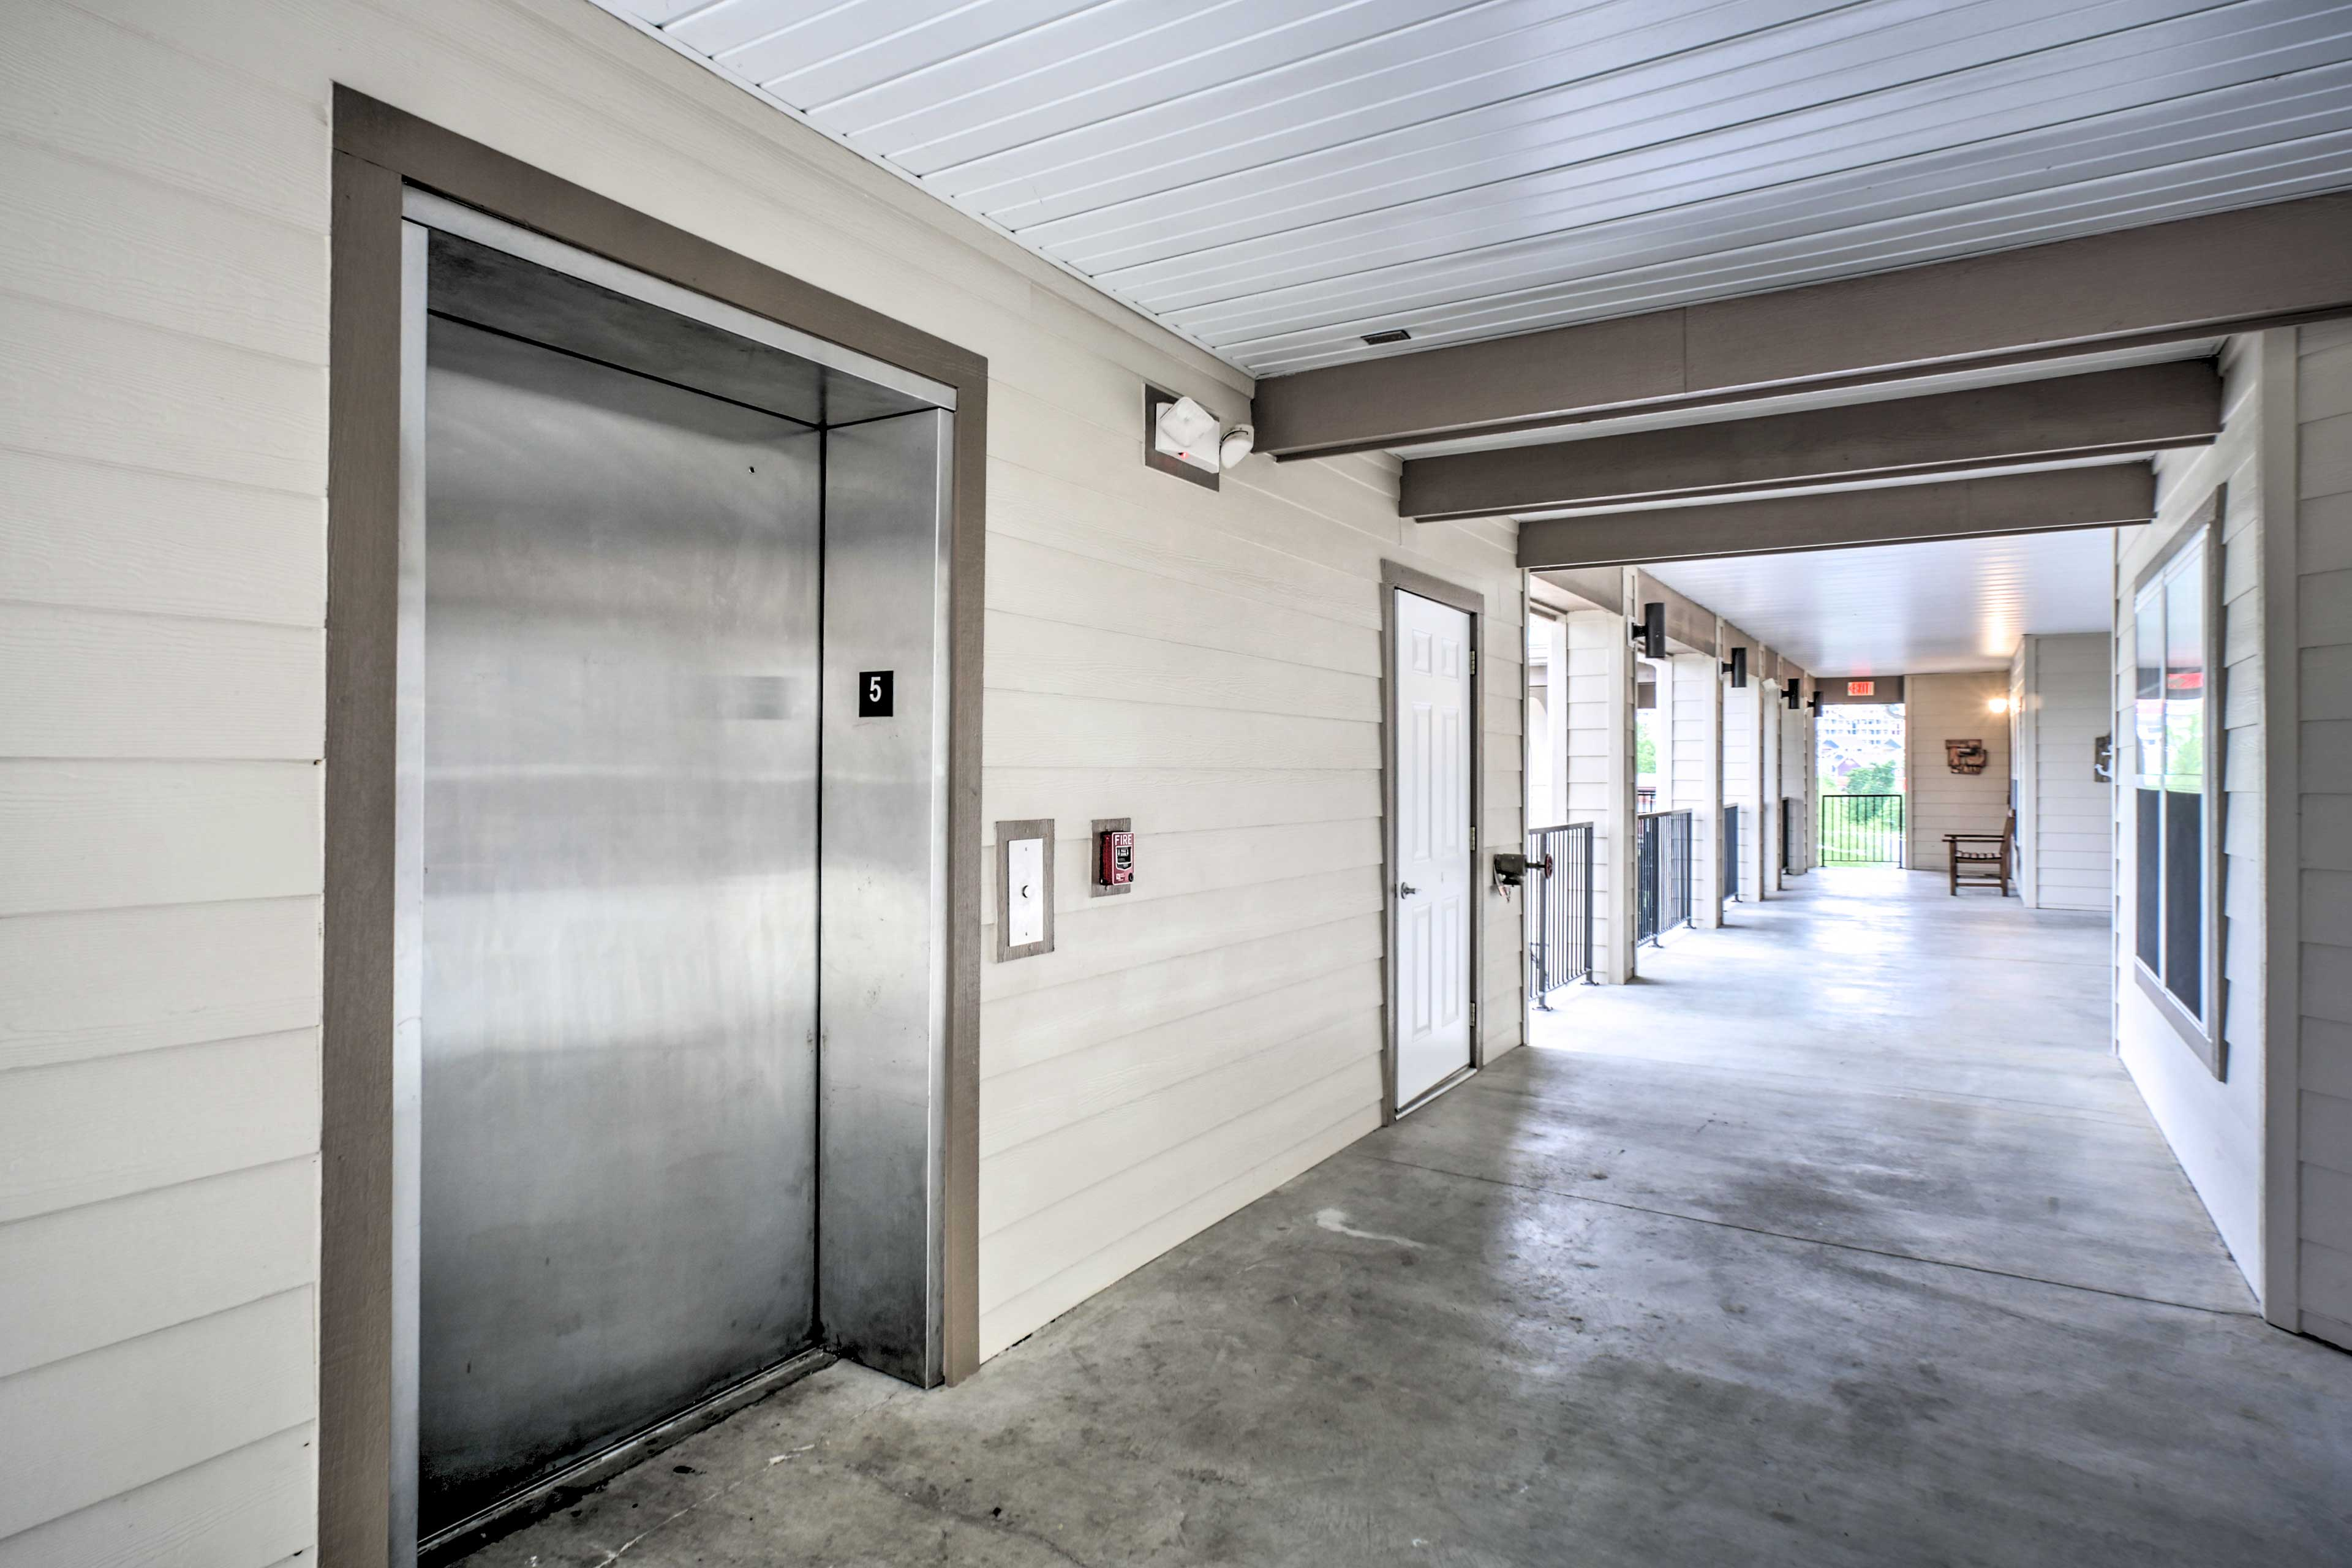 This resort complex has elevators for guests to access the 5th floor condo.